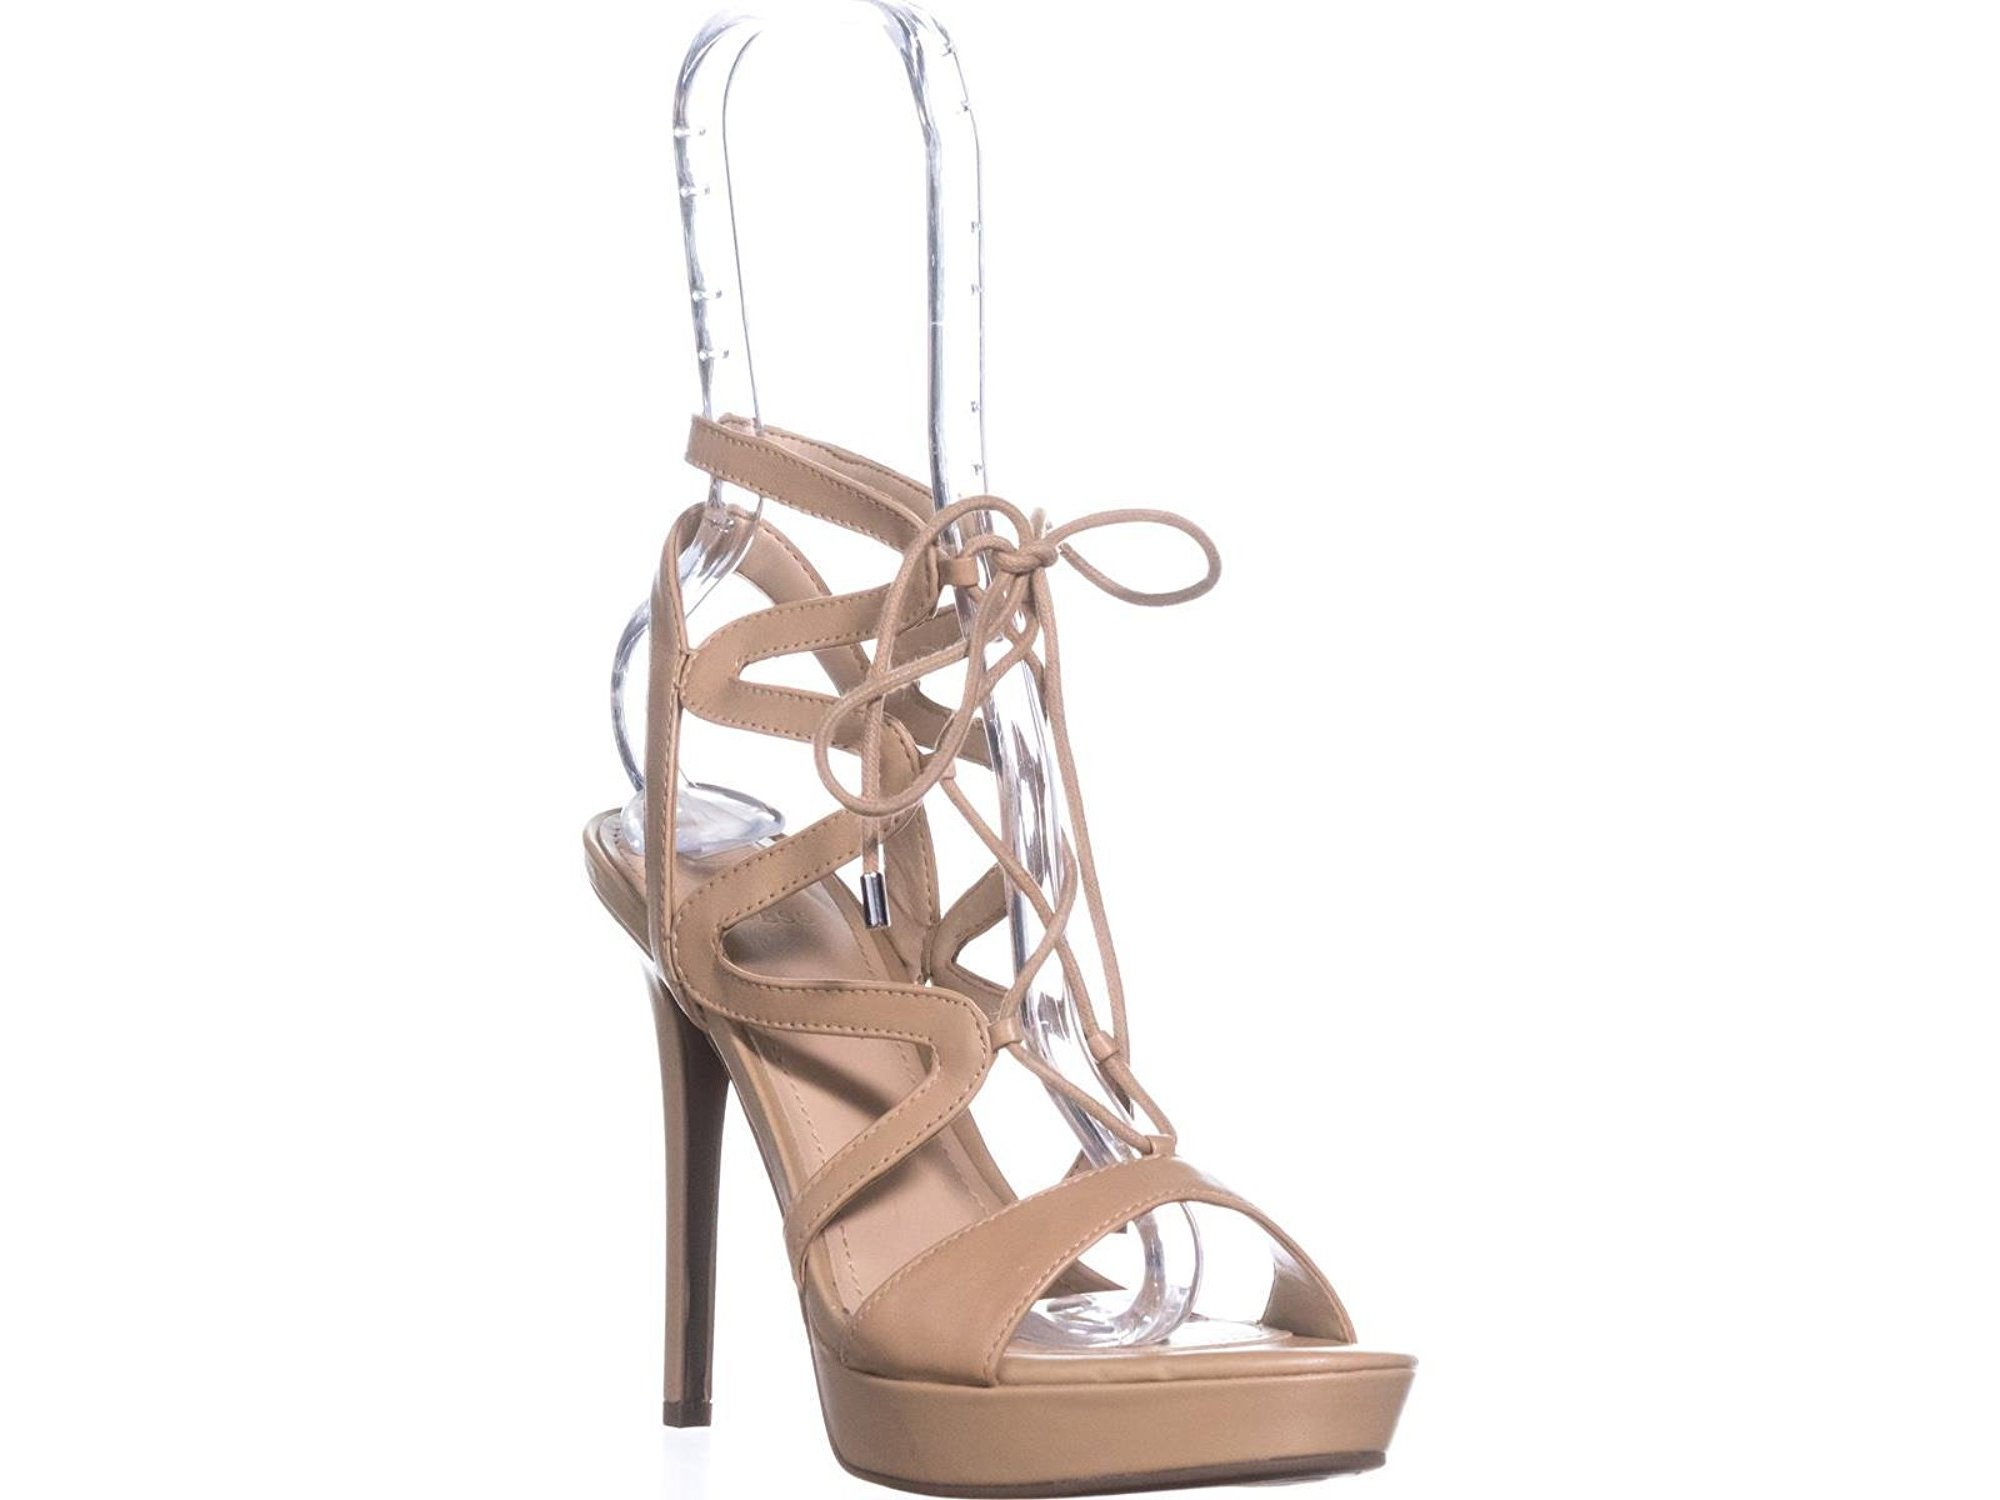 GUESS Damenschuhe Aurela Leder Open Toe Casual Casual Casual Strappy Sandales 385877